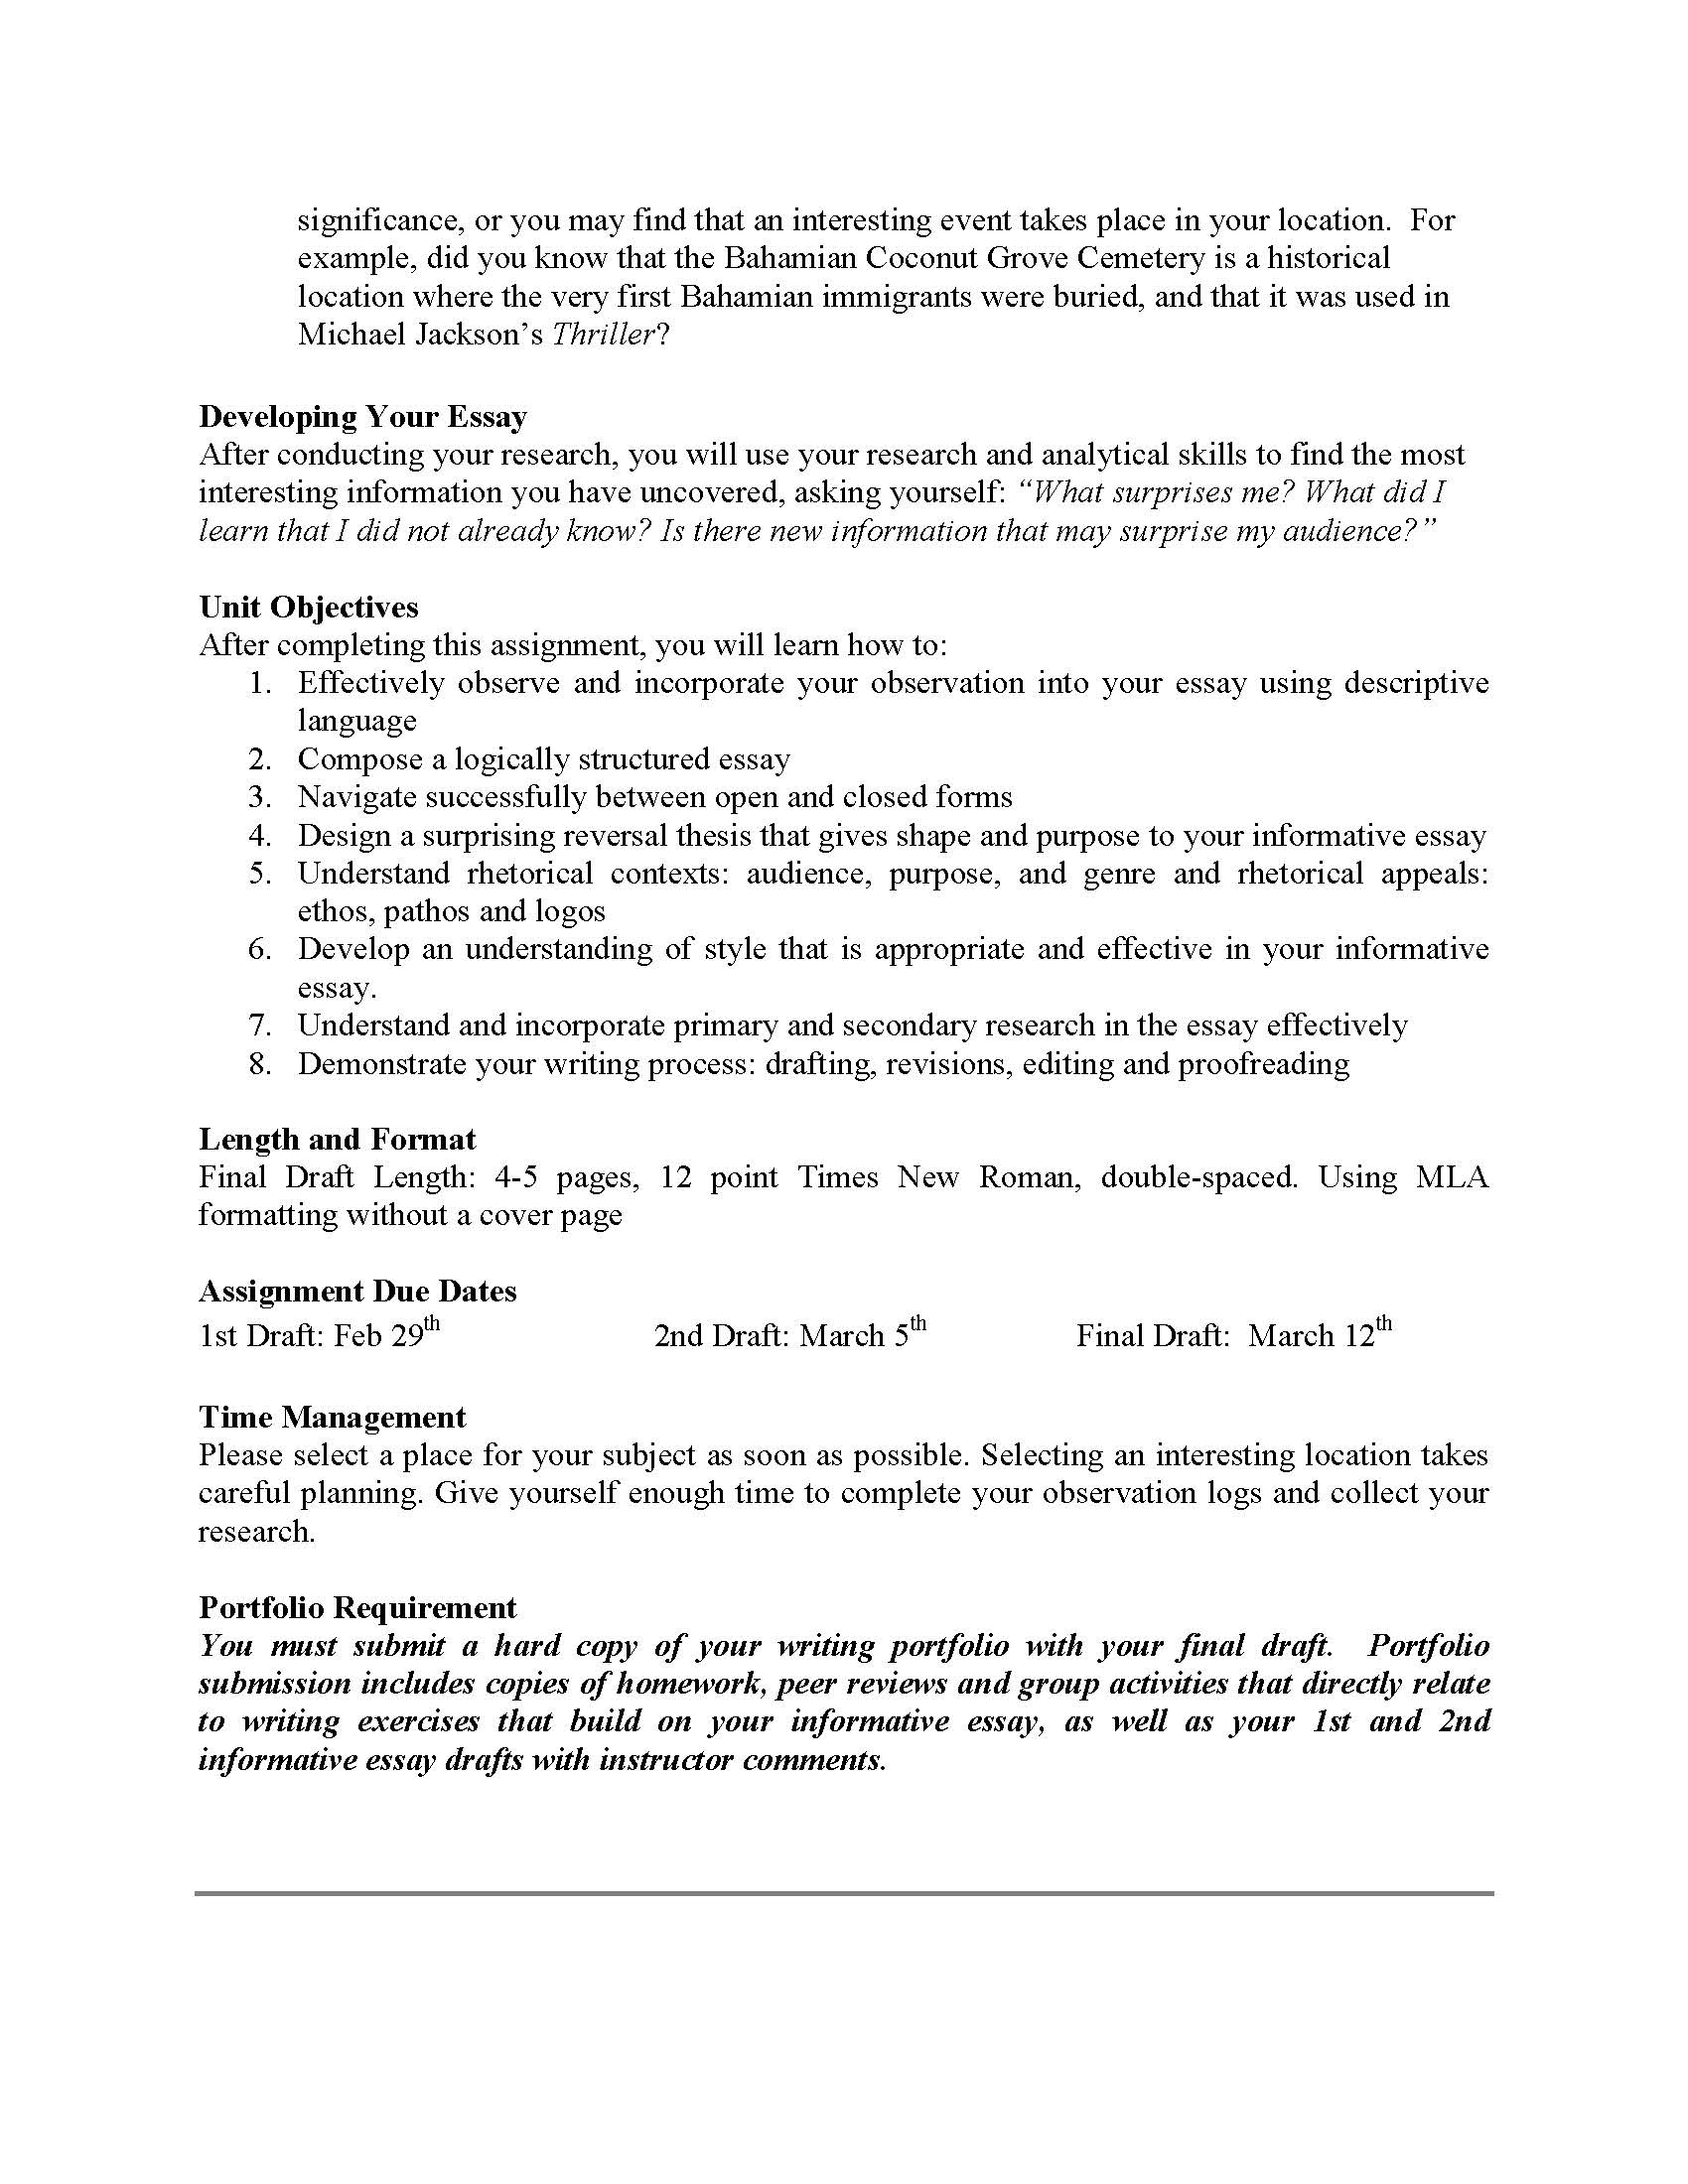 011 Essay Example Informational Informative Unit Assignment Page 2 Unforgettable Rubric 4th Grade Outline Explanatory Definition Full